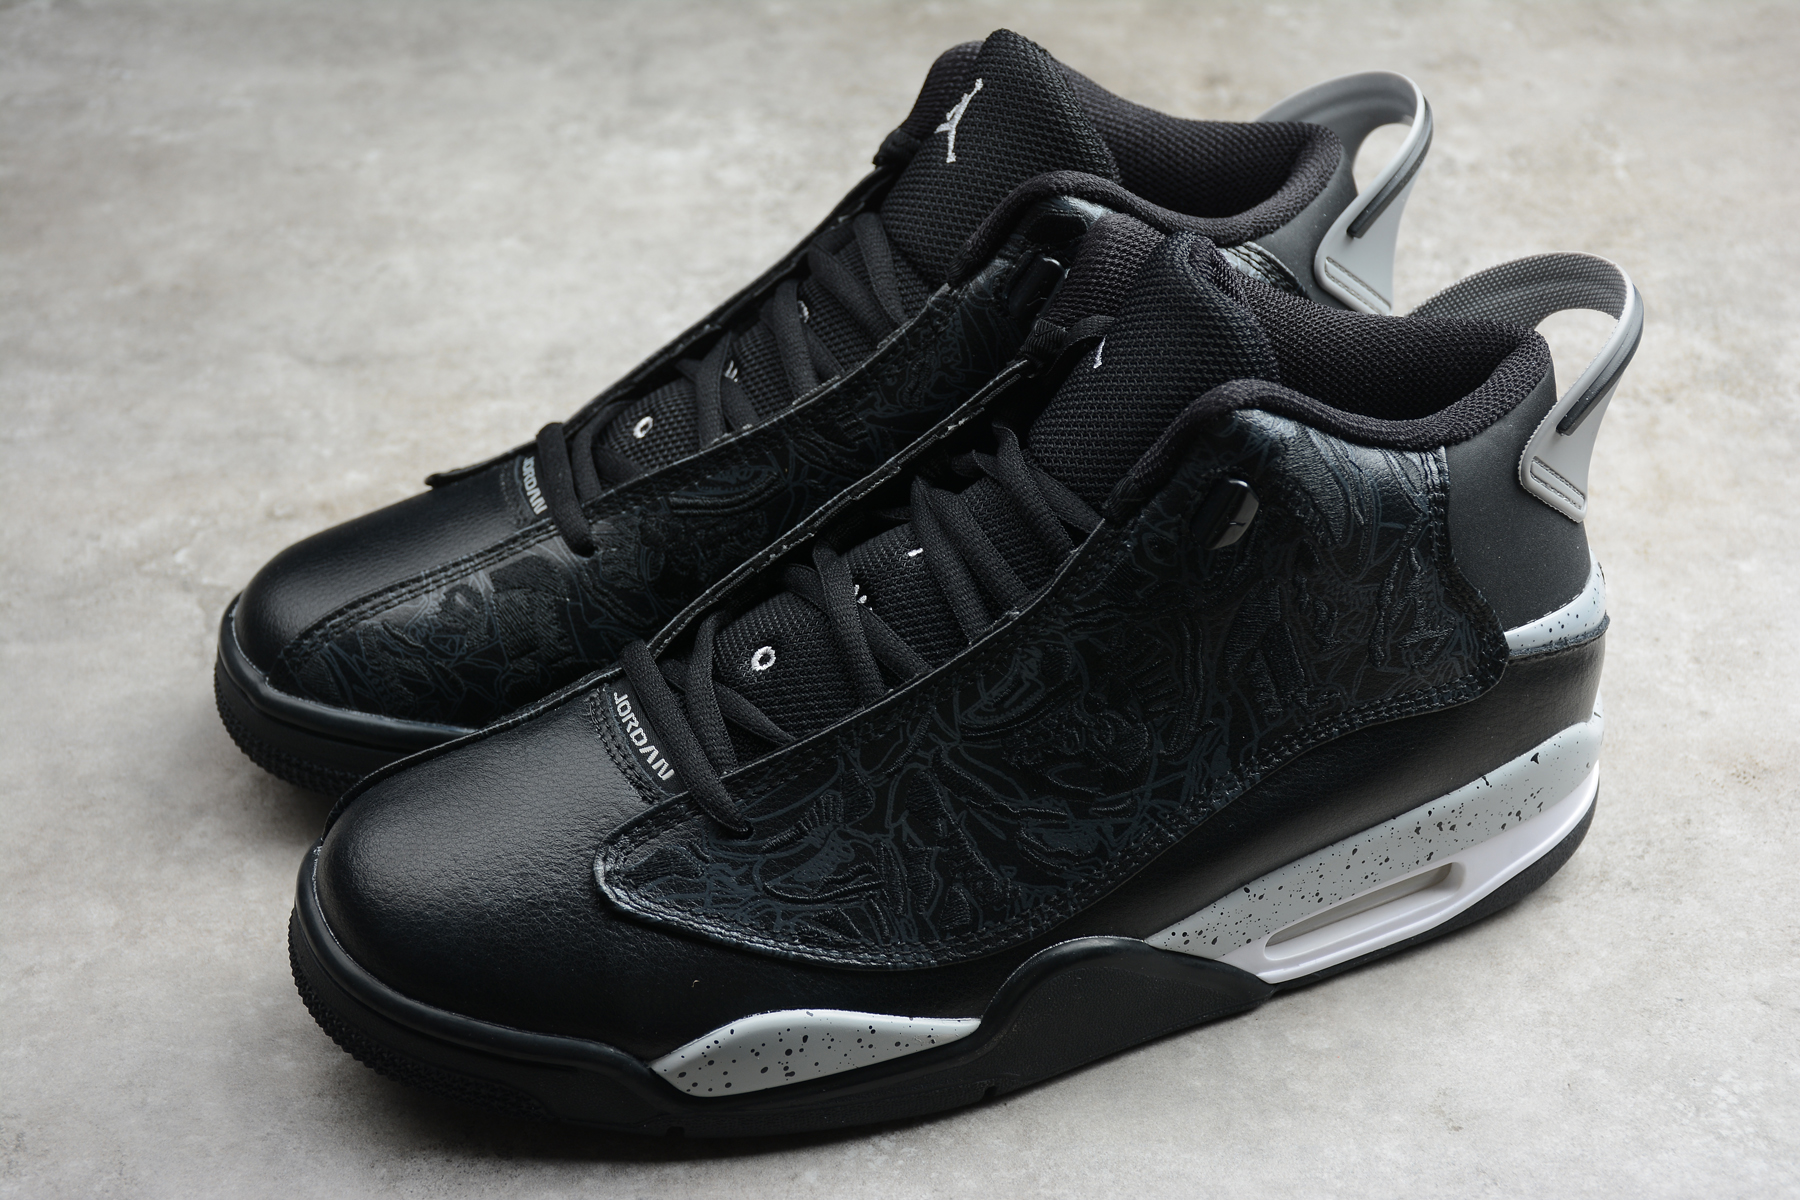 Air Jordan DUB Zero Black Grey Shoes